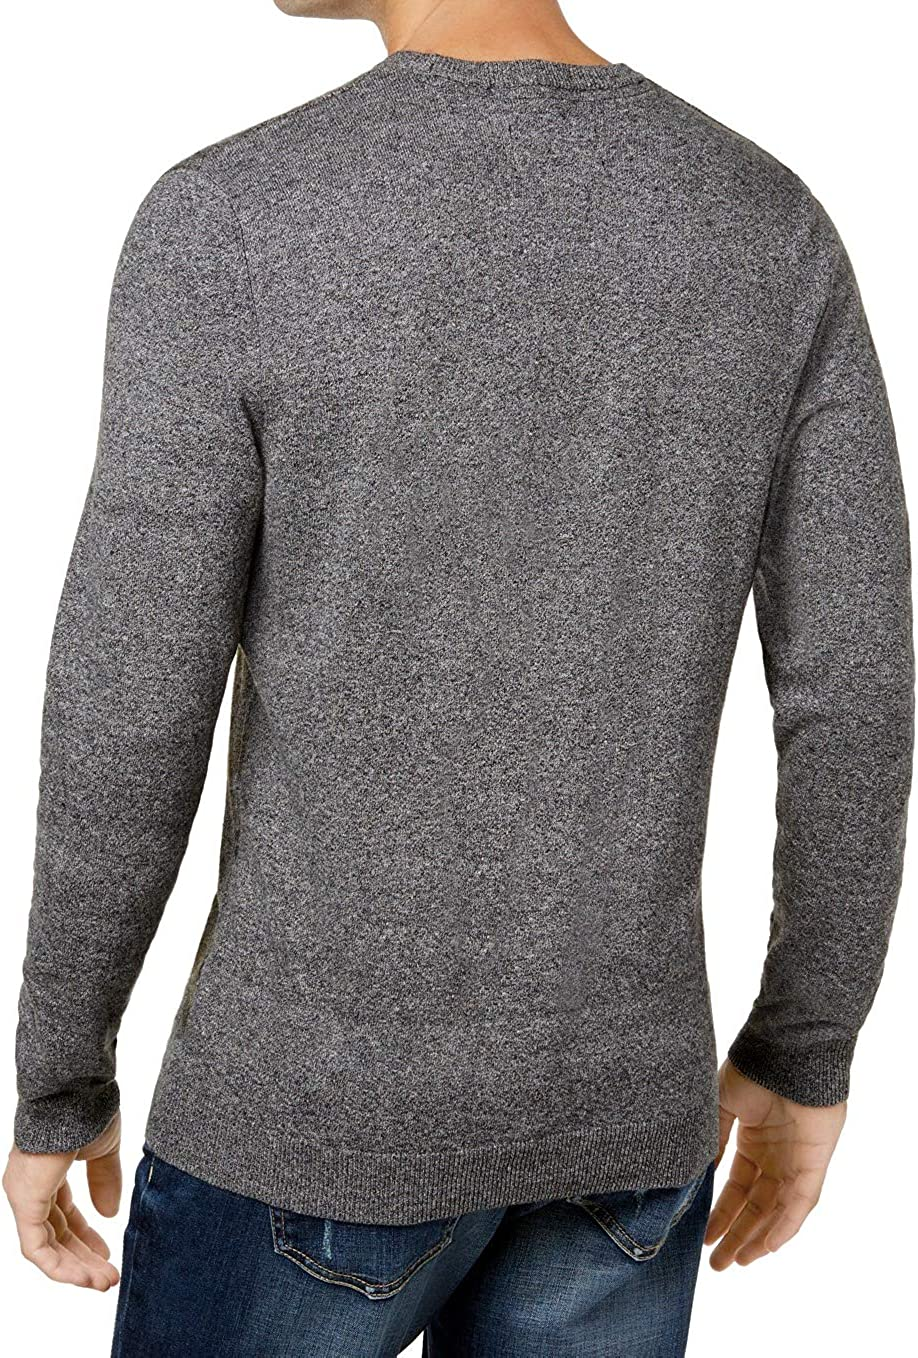 American Rag Mens Leaf Print Knit Crewneck Sweater